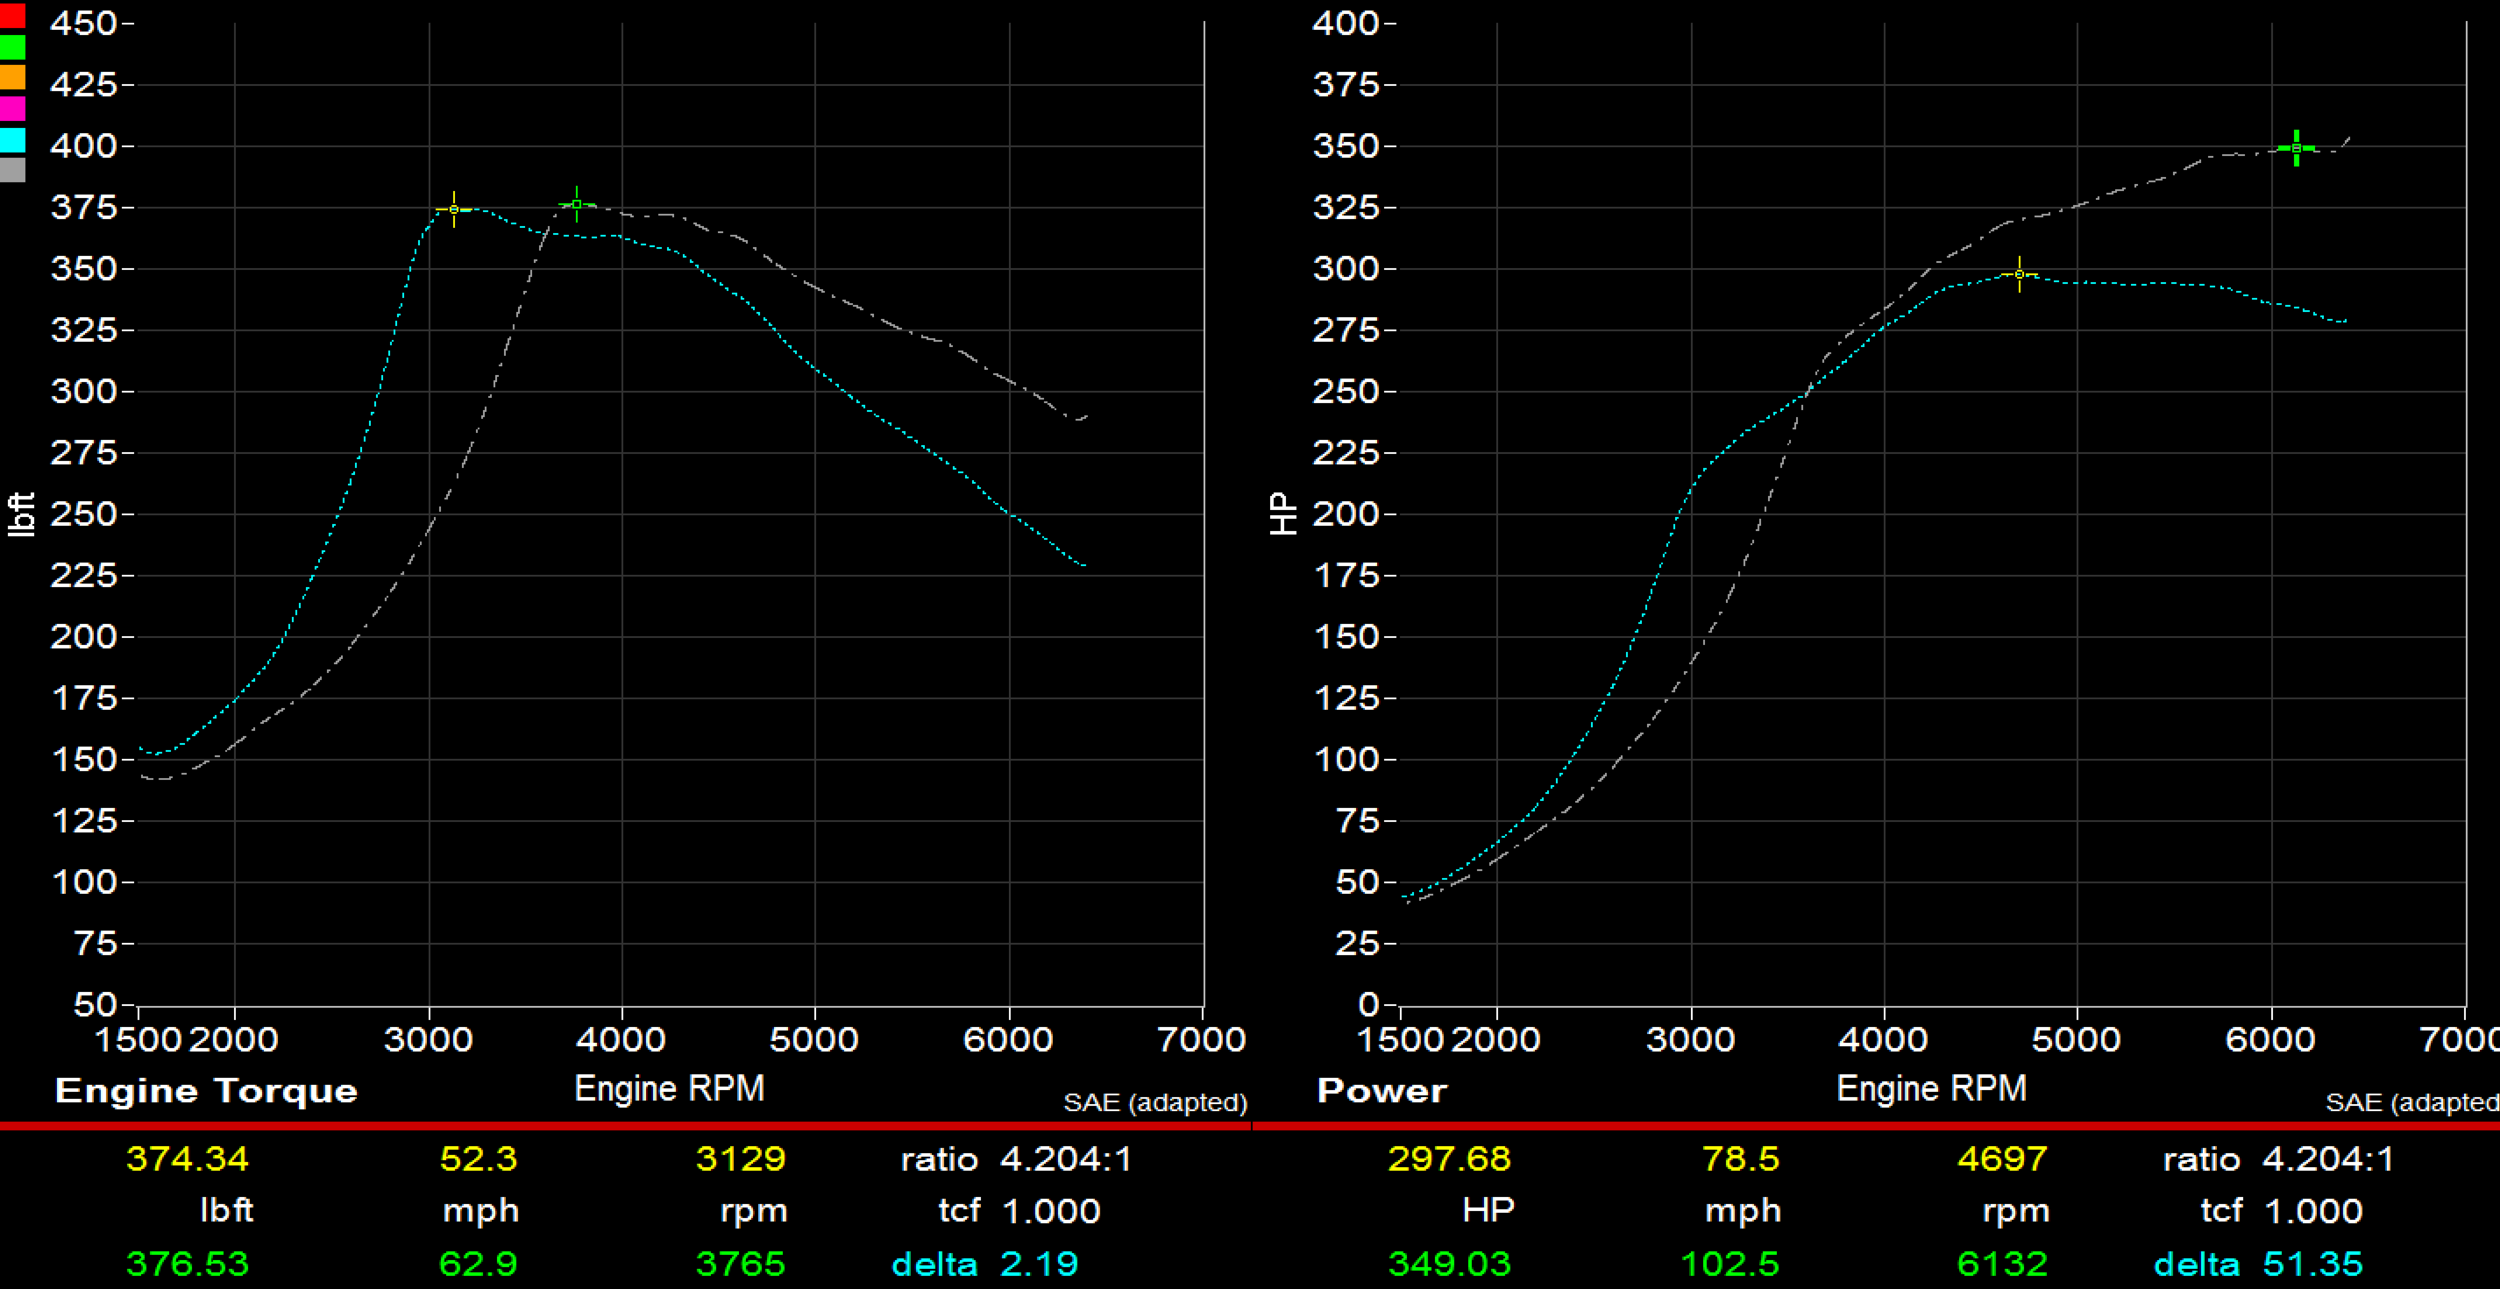 Just one of many various dyno graphs showing power gains from the W1 turbo